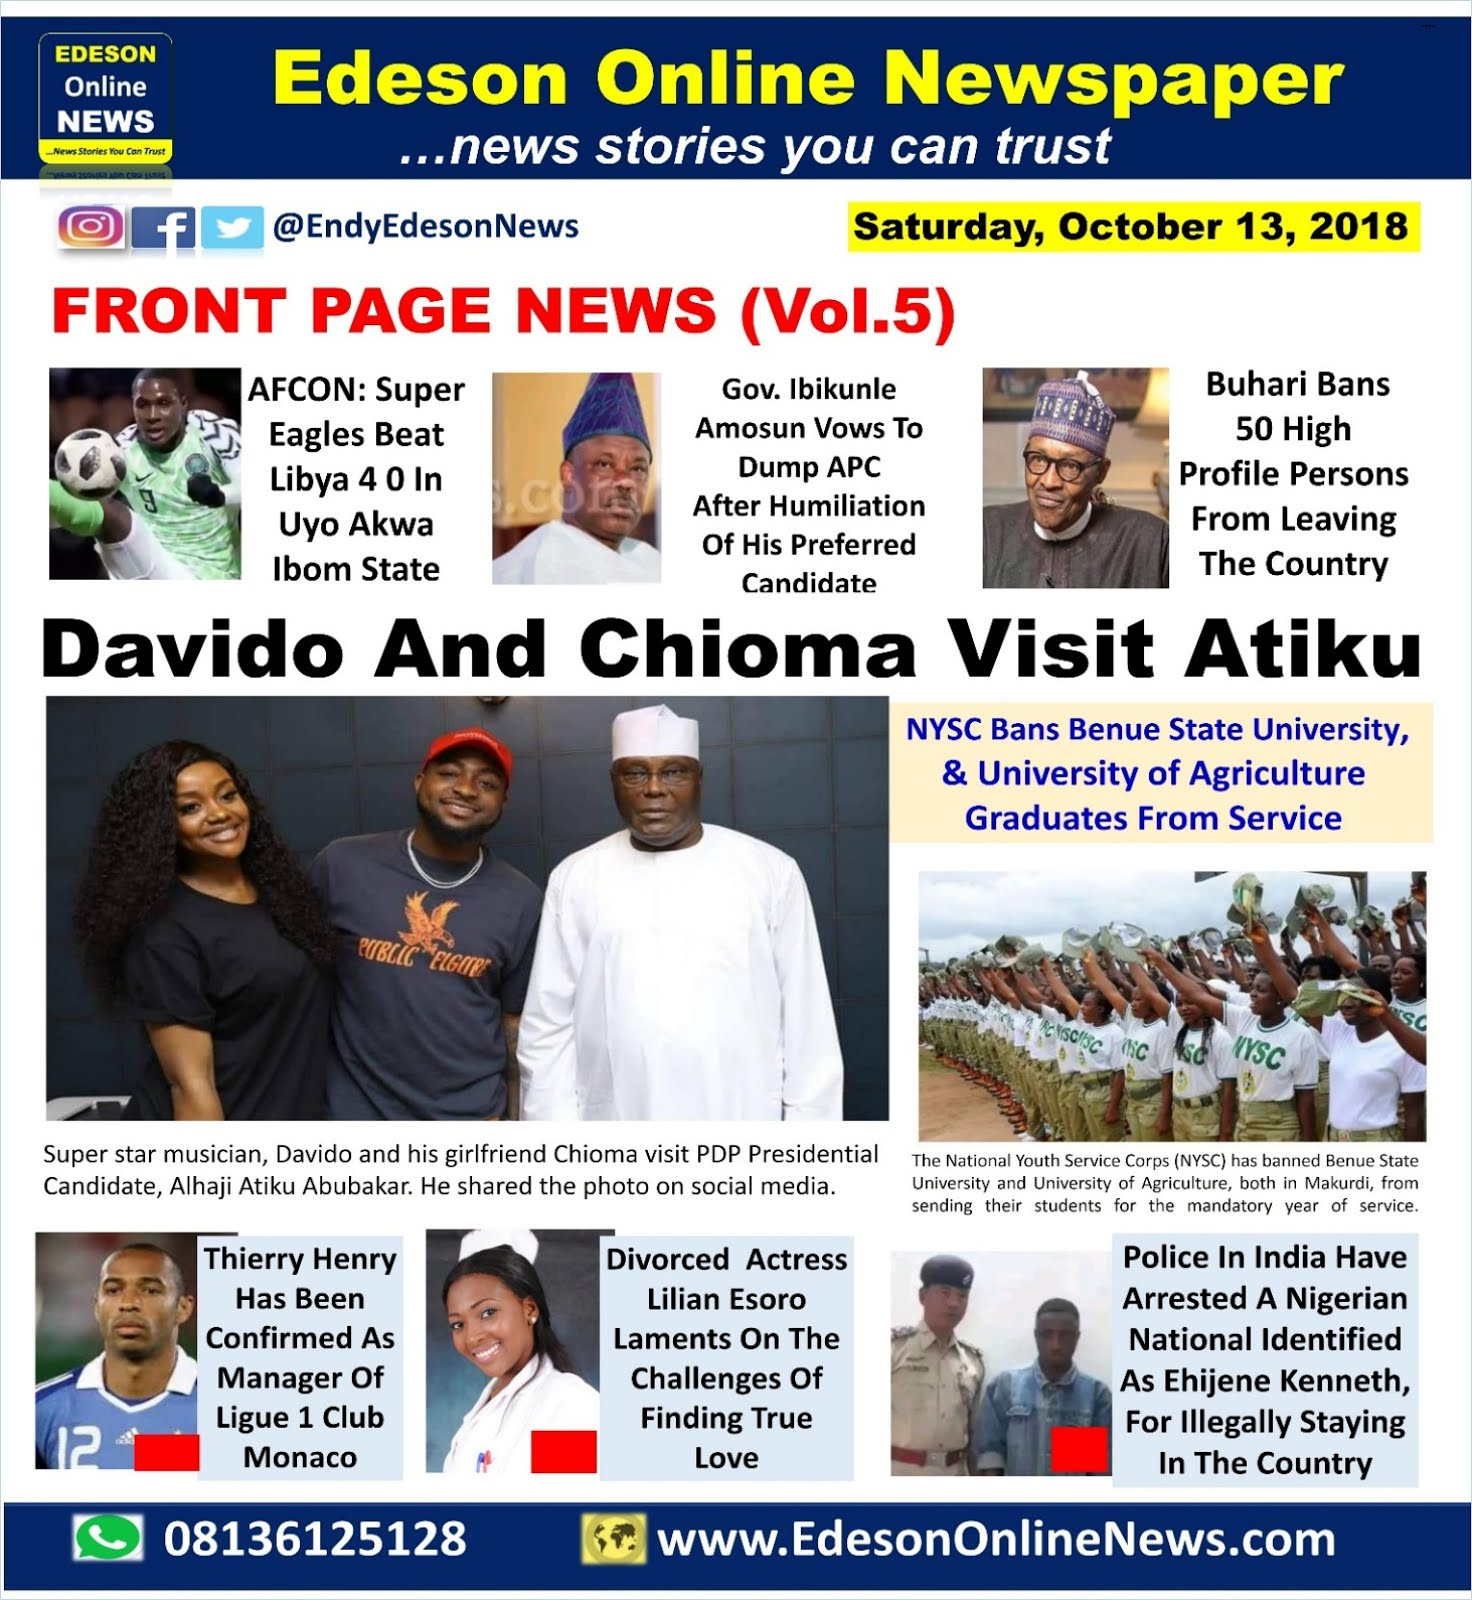 Edeson Online Newspaper: Top 12 Trending News Stories ...